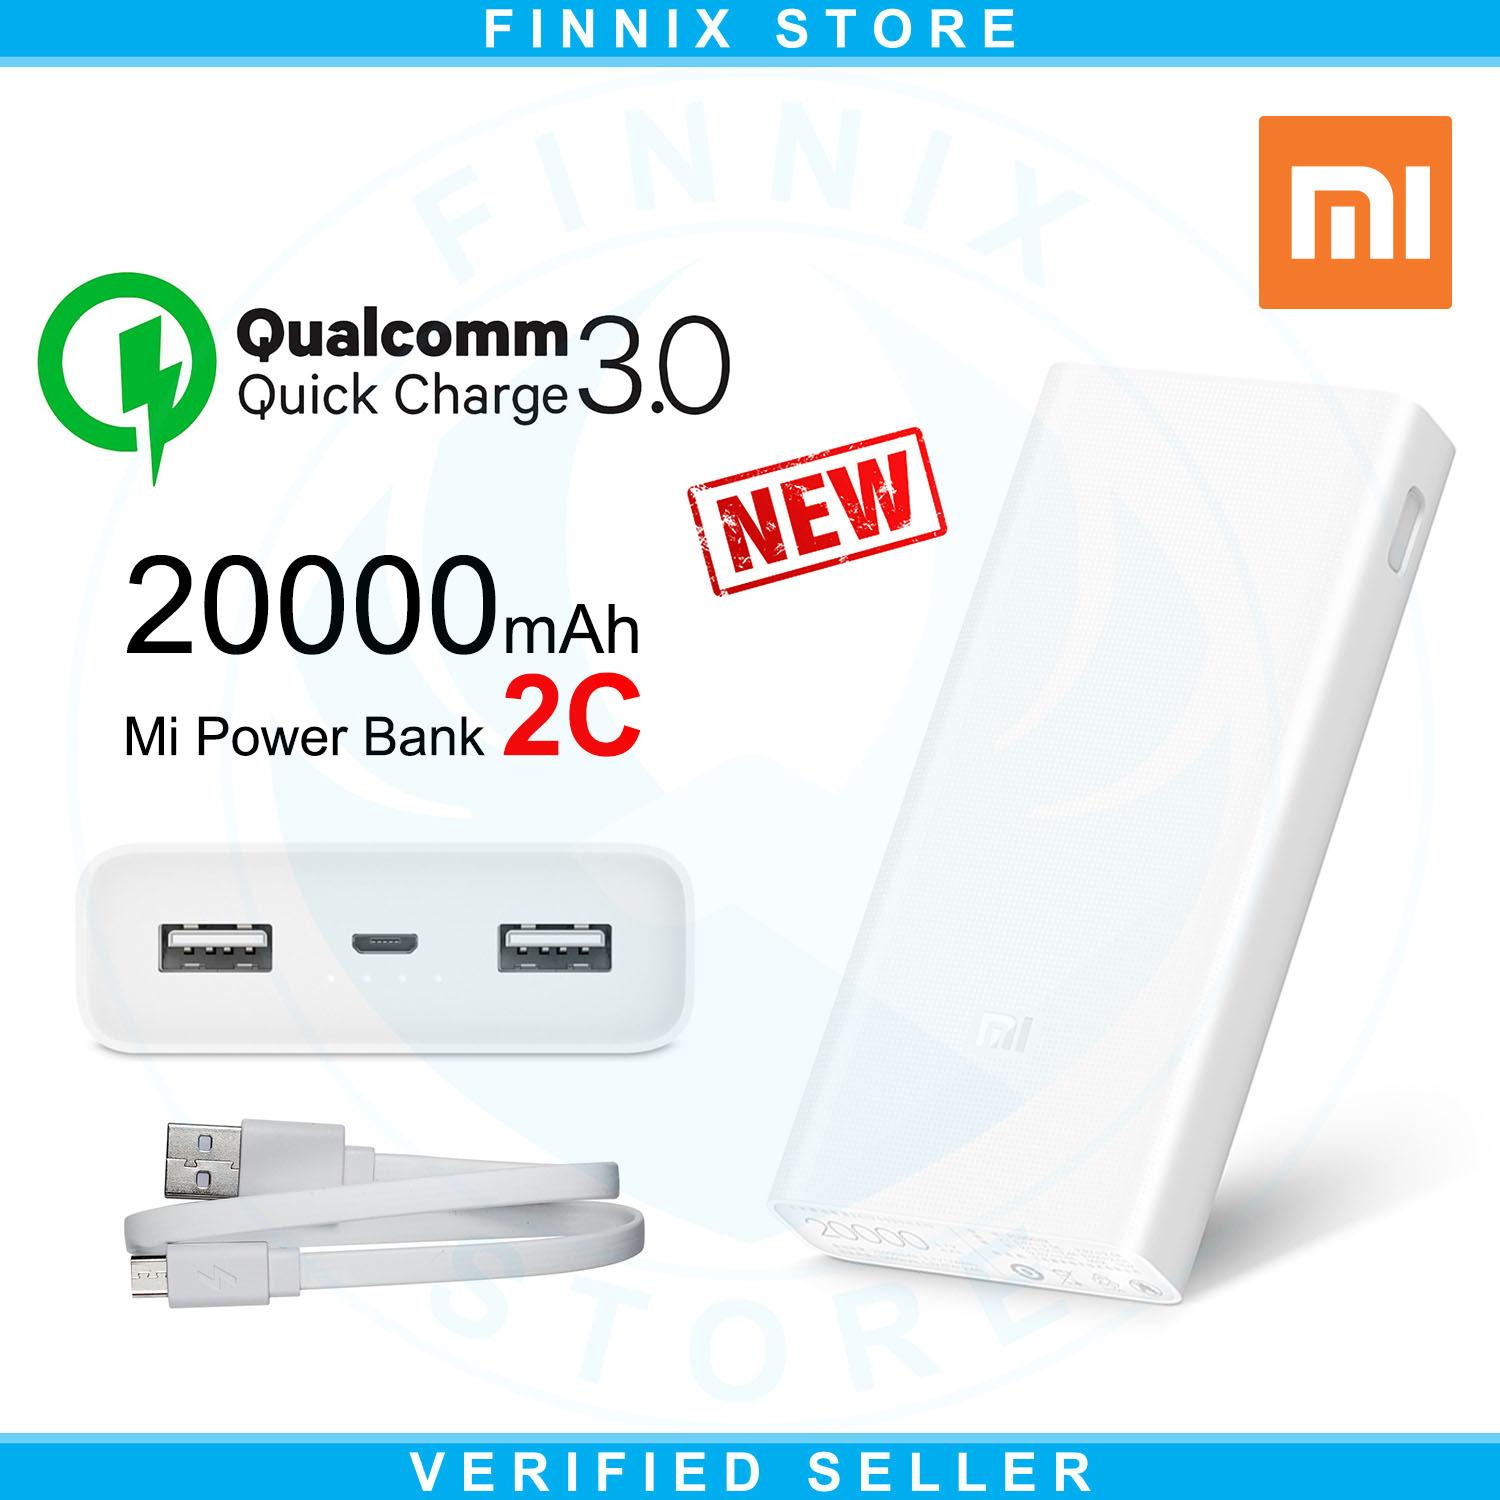 Xiaomi Mi Power Bank 20000mAh 2C Two-way Quick Charge 3.0  (New) - White